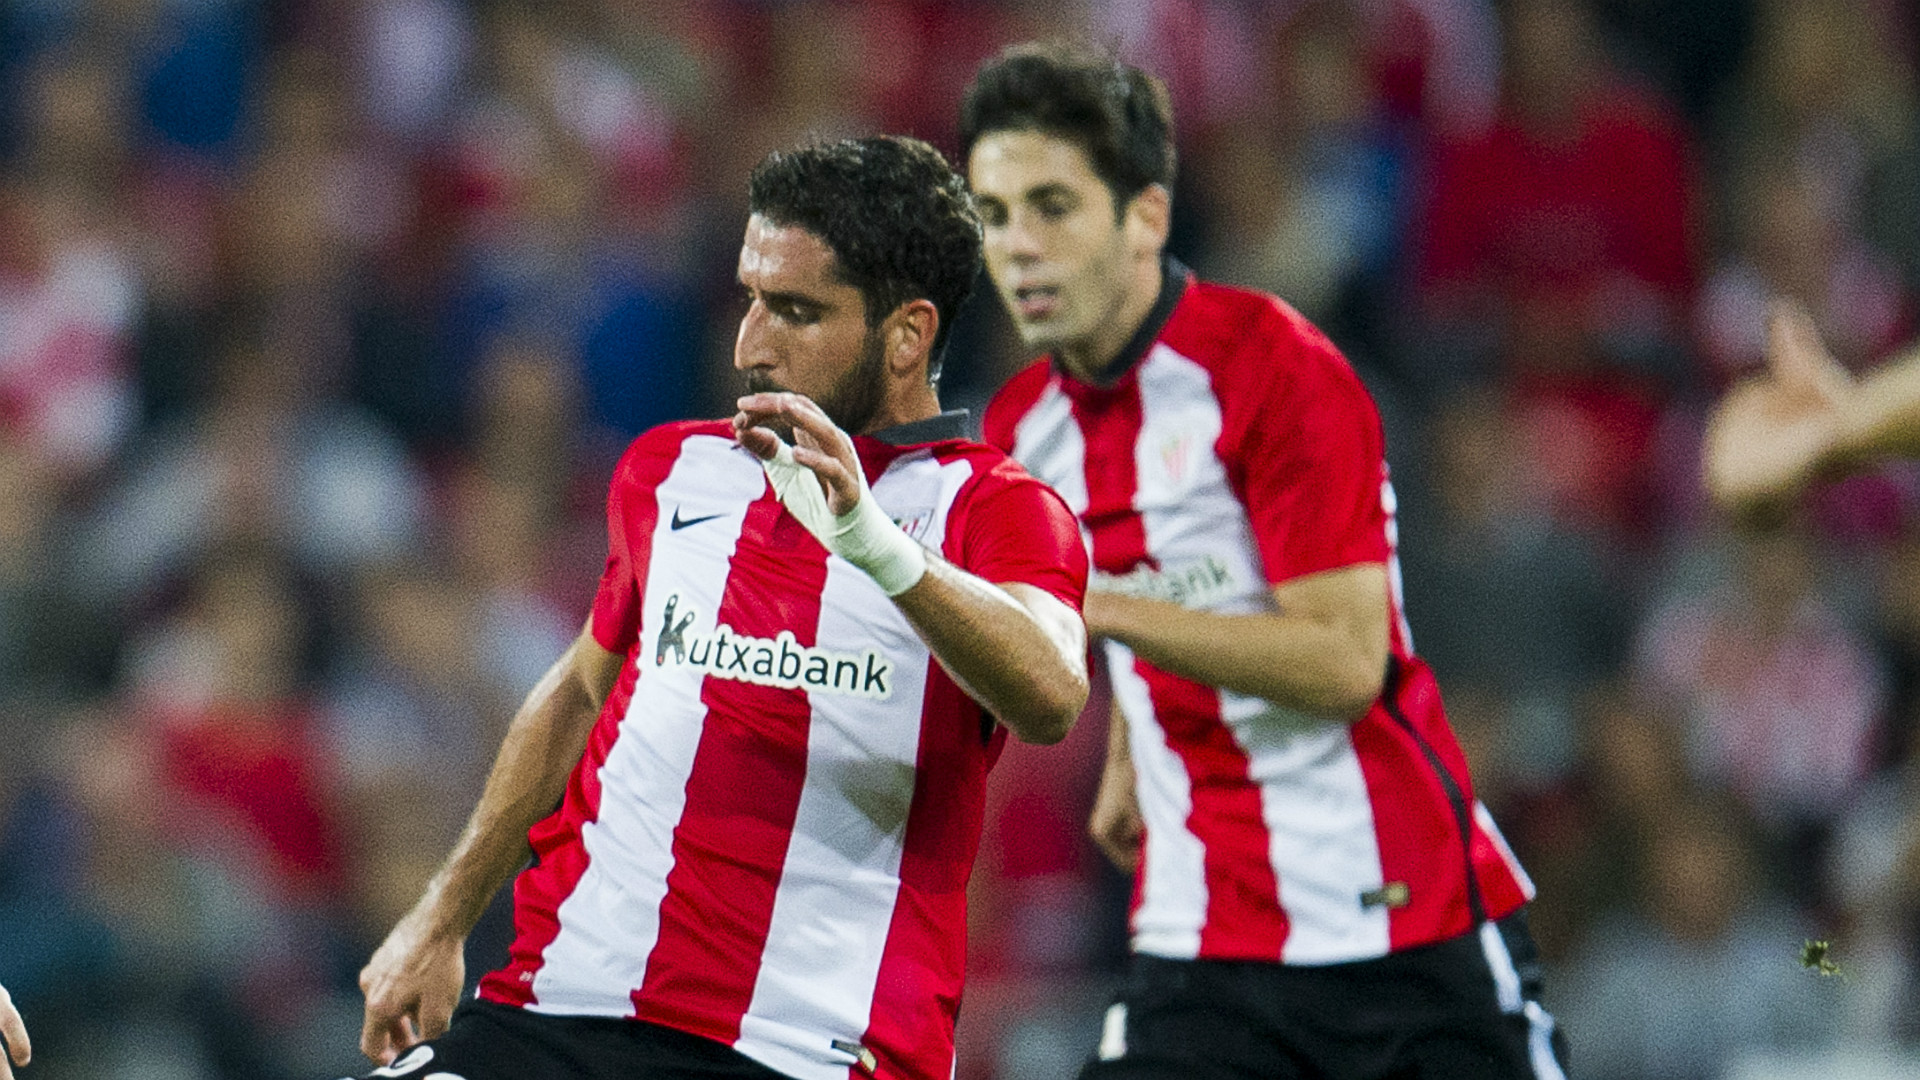 Video: Granada vs Athletic Bilbao